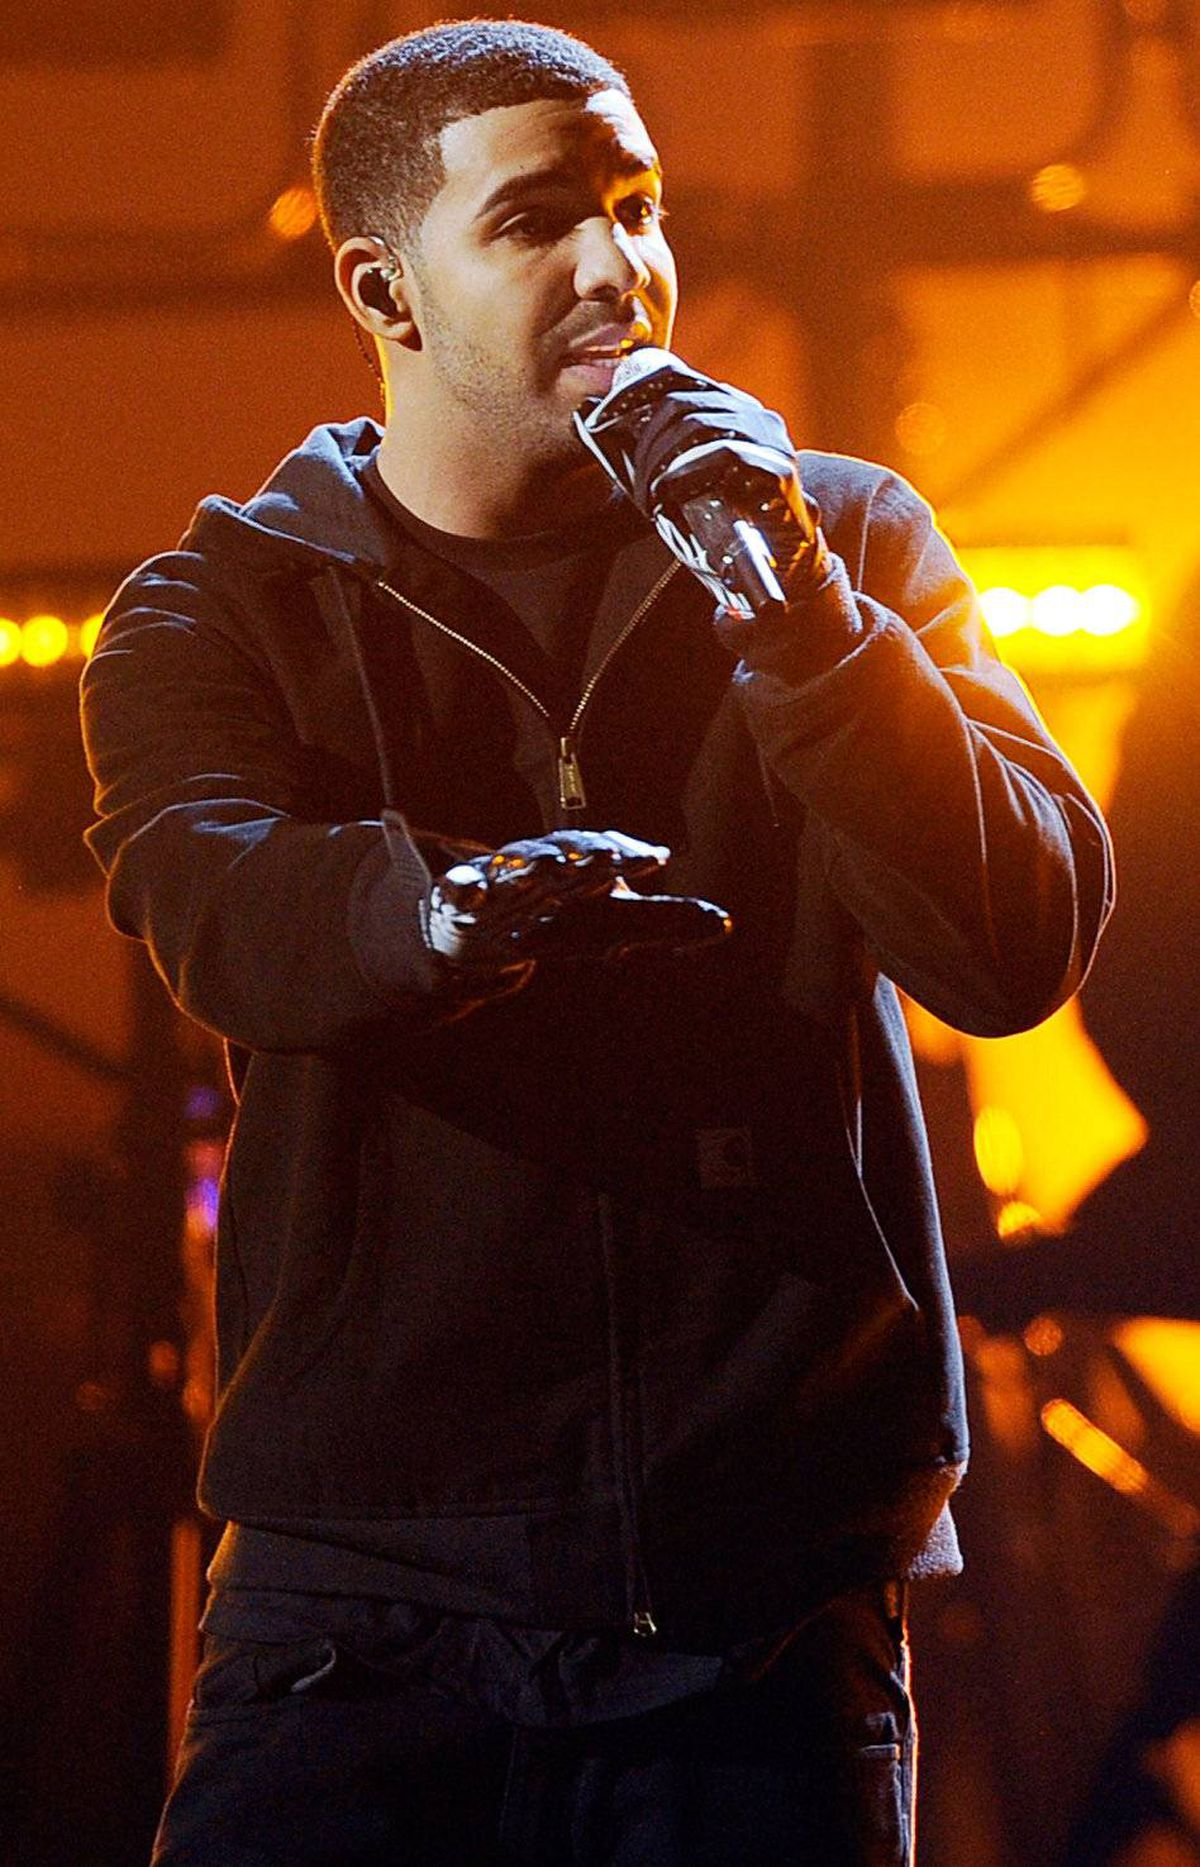 Rapper Drake performs onstage at the 2011 American Music Awards held at Nokia Theatre L.A. LIVE on November 20, 2011 in Los Angeles, California.